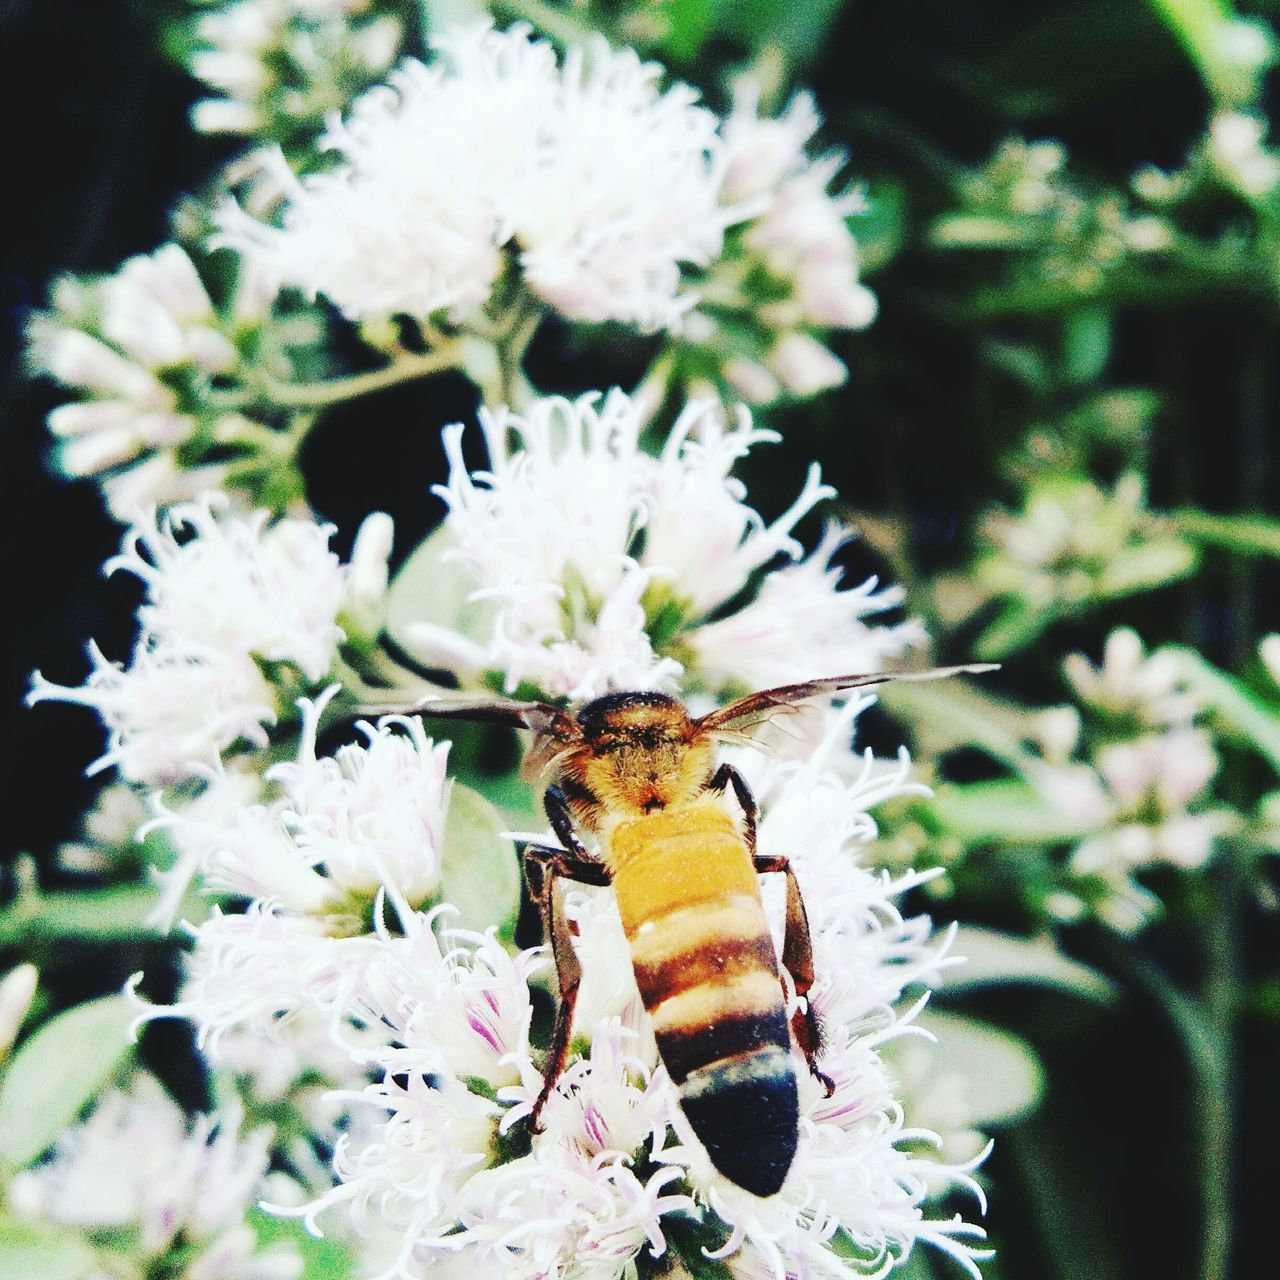 Nature Flower Insect Growth Animal Themes Plant Outdoors One Animal No People Fragility Freshness Pollination Flower Head Day Beauty In Nature Close-up